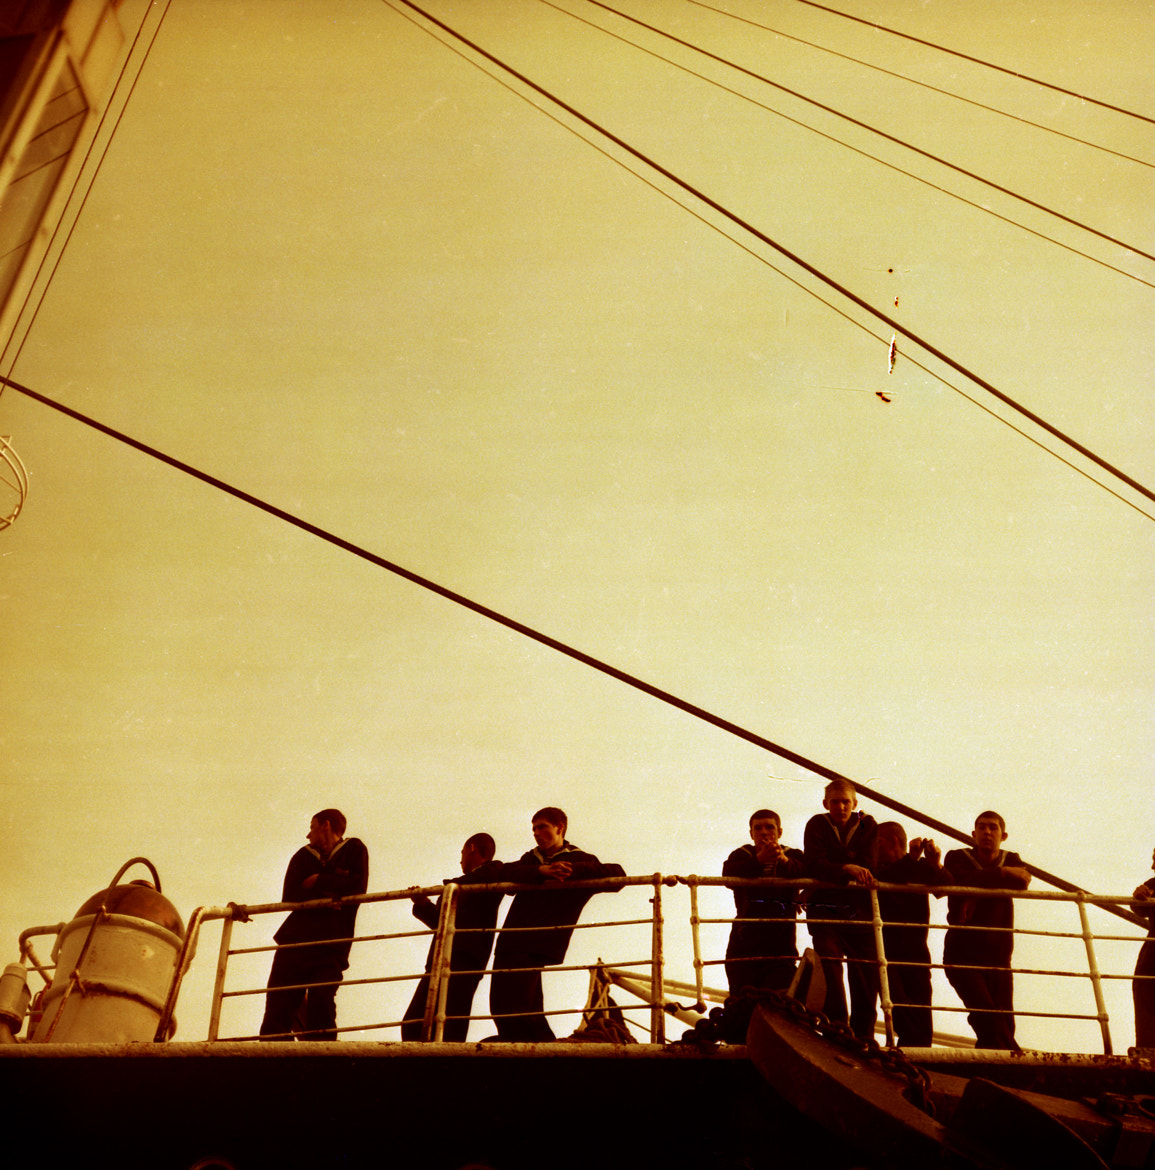 Photograph Russian Sailors by Mella Tönnies on 500px